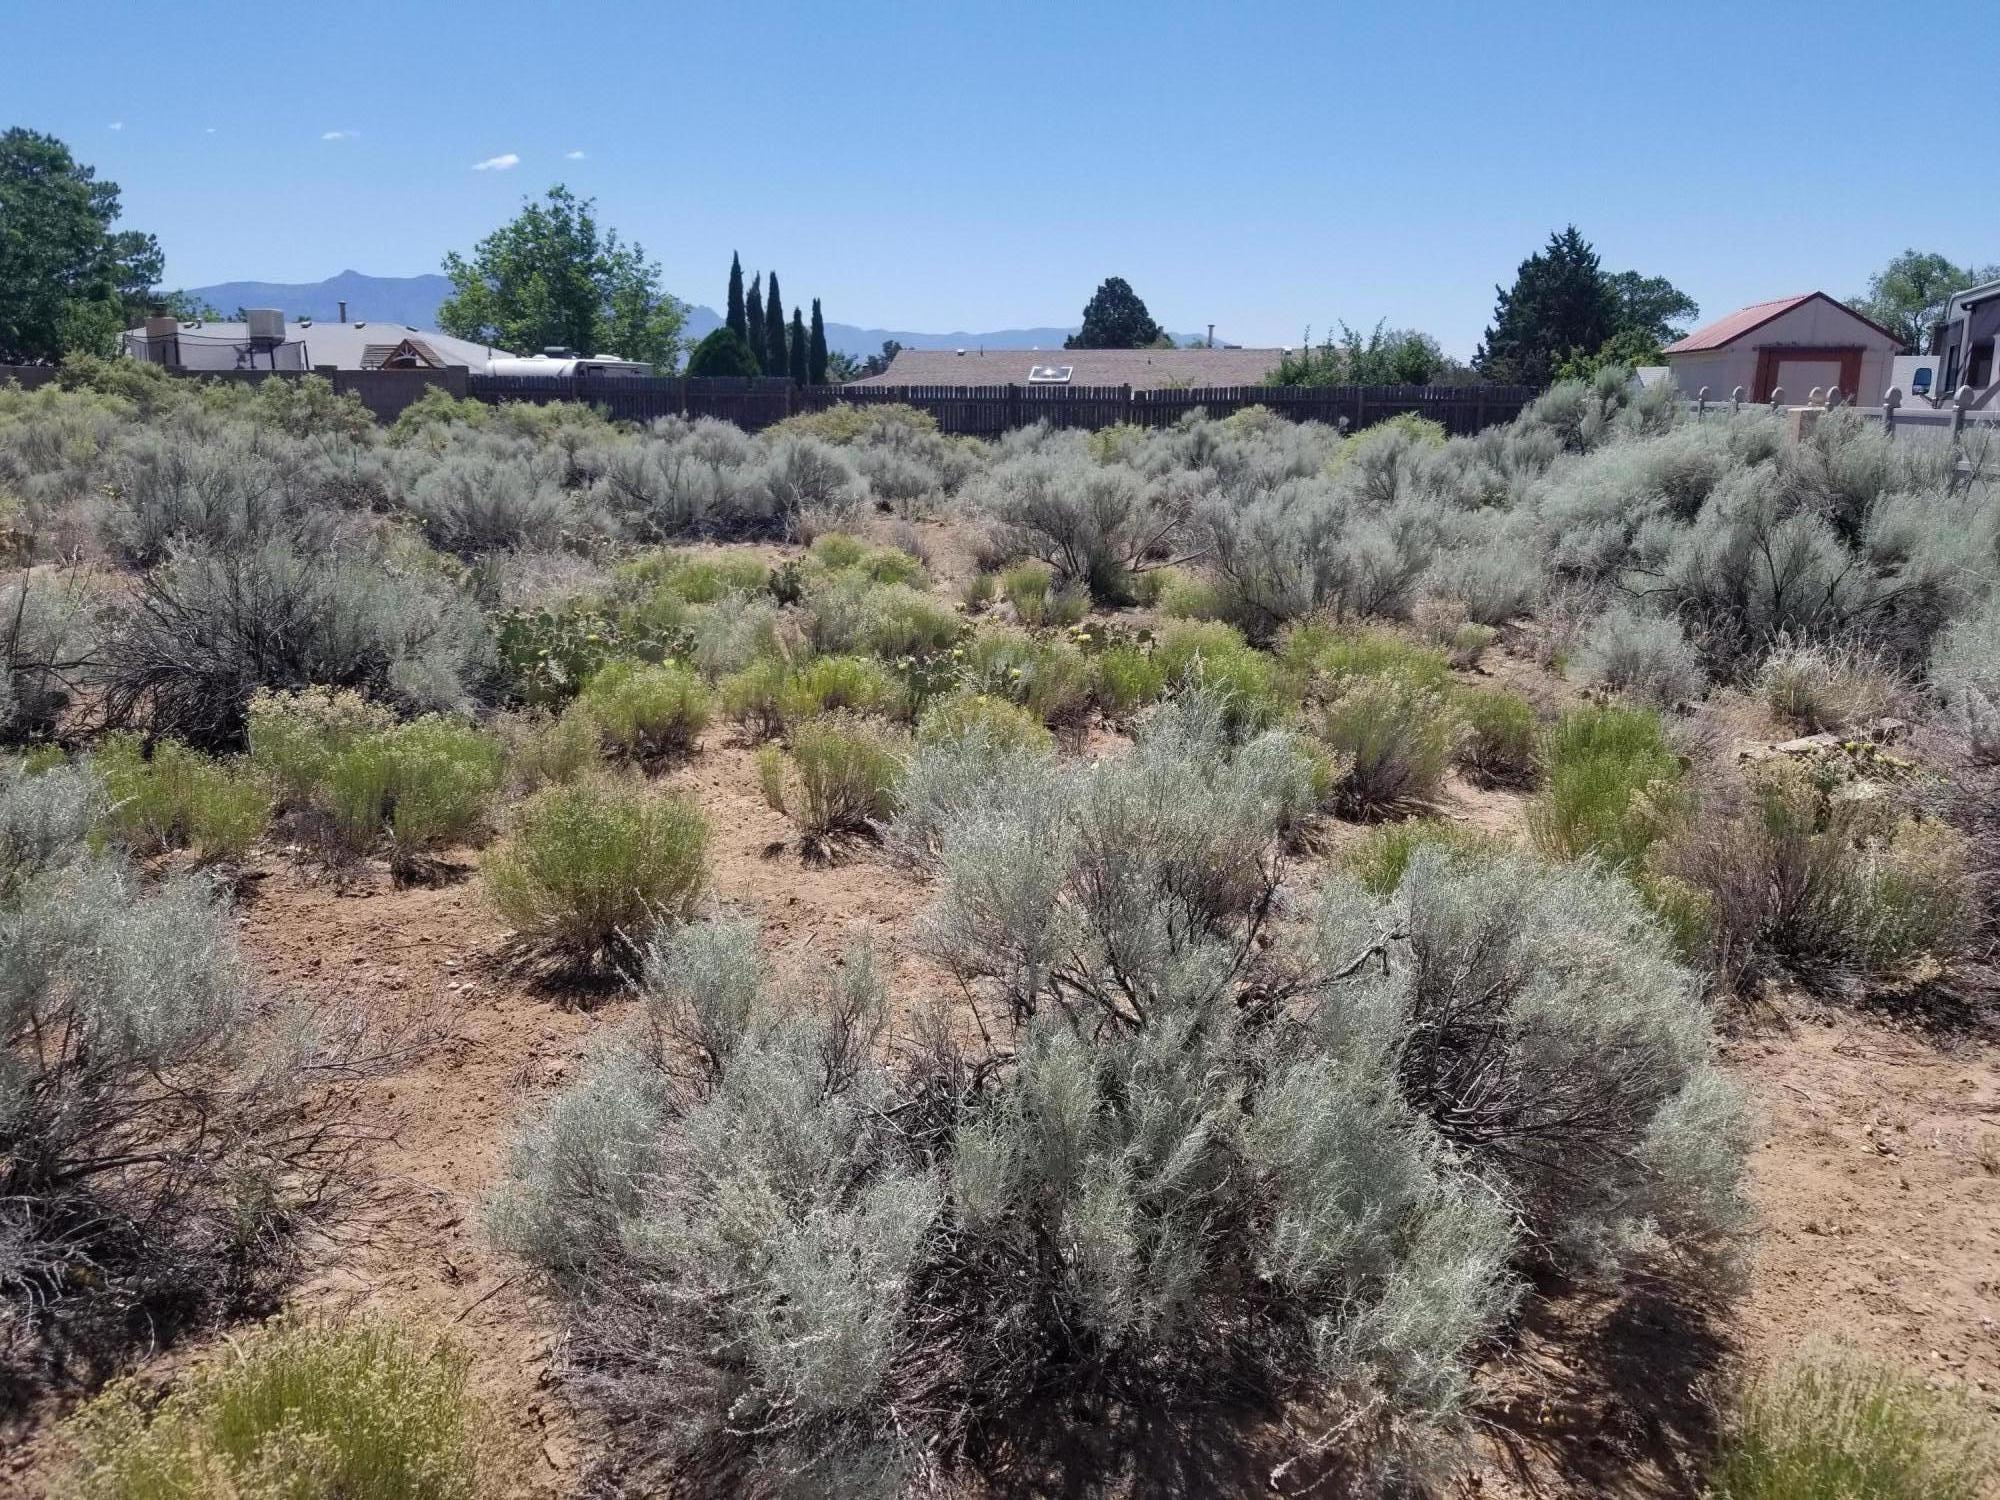 96 Utah Meadow Road NE, Rio Rancho, NM 87124 - Rio Rancho, NM real estate listing